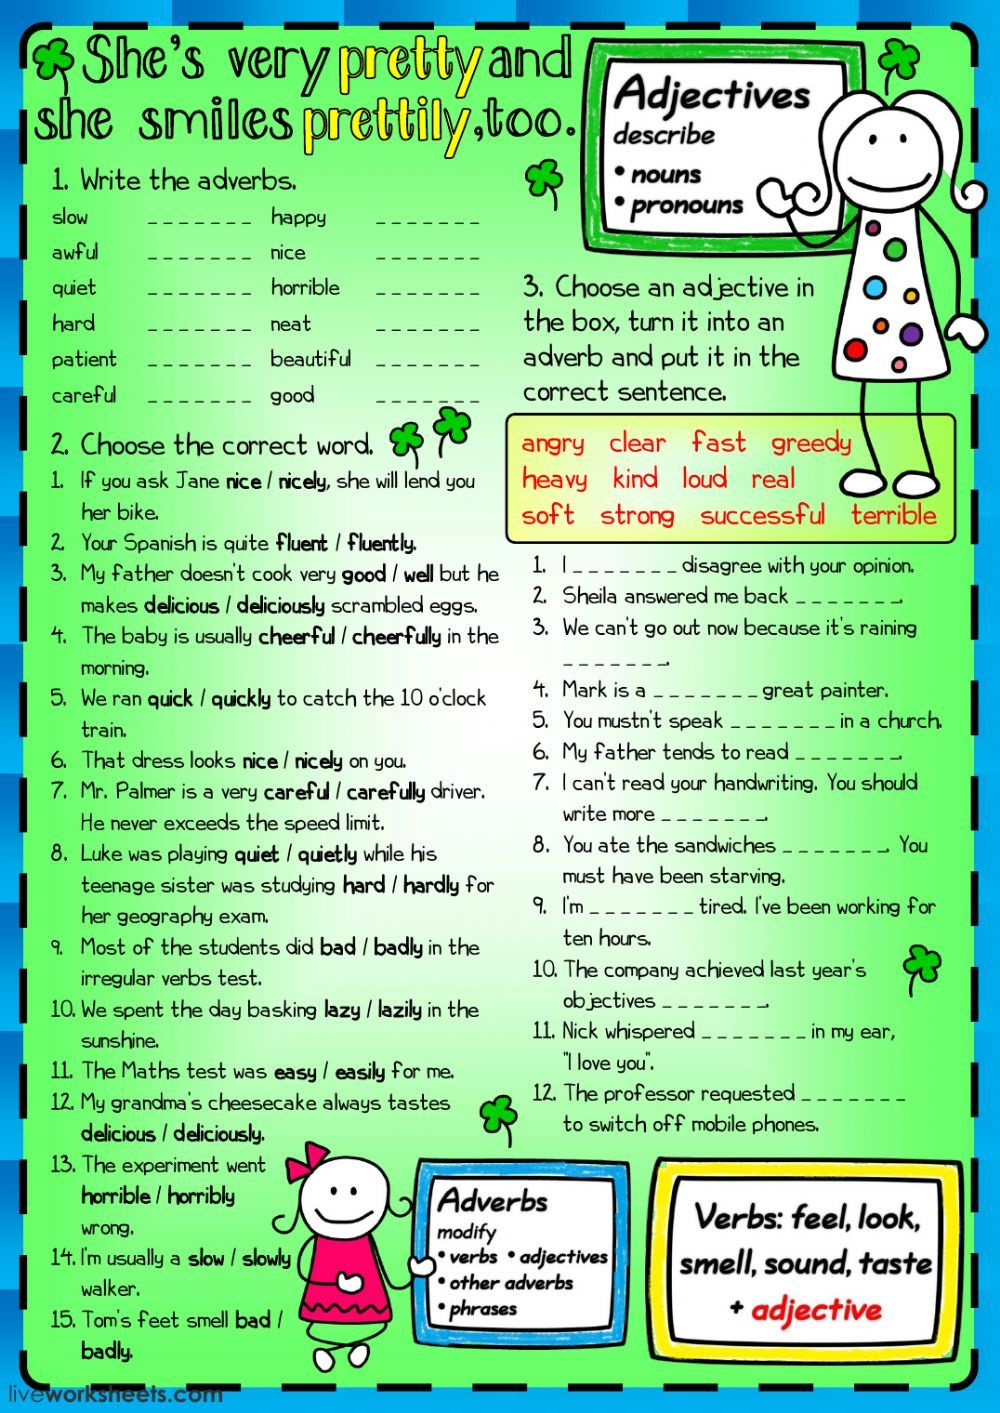 Adjectives And Adverbs Interactive And Downloadable Worksheet You Can Do The Exercises Online Or Download The Worksheet As Pdf Esl Blog